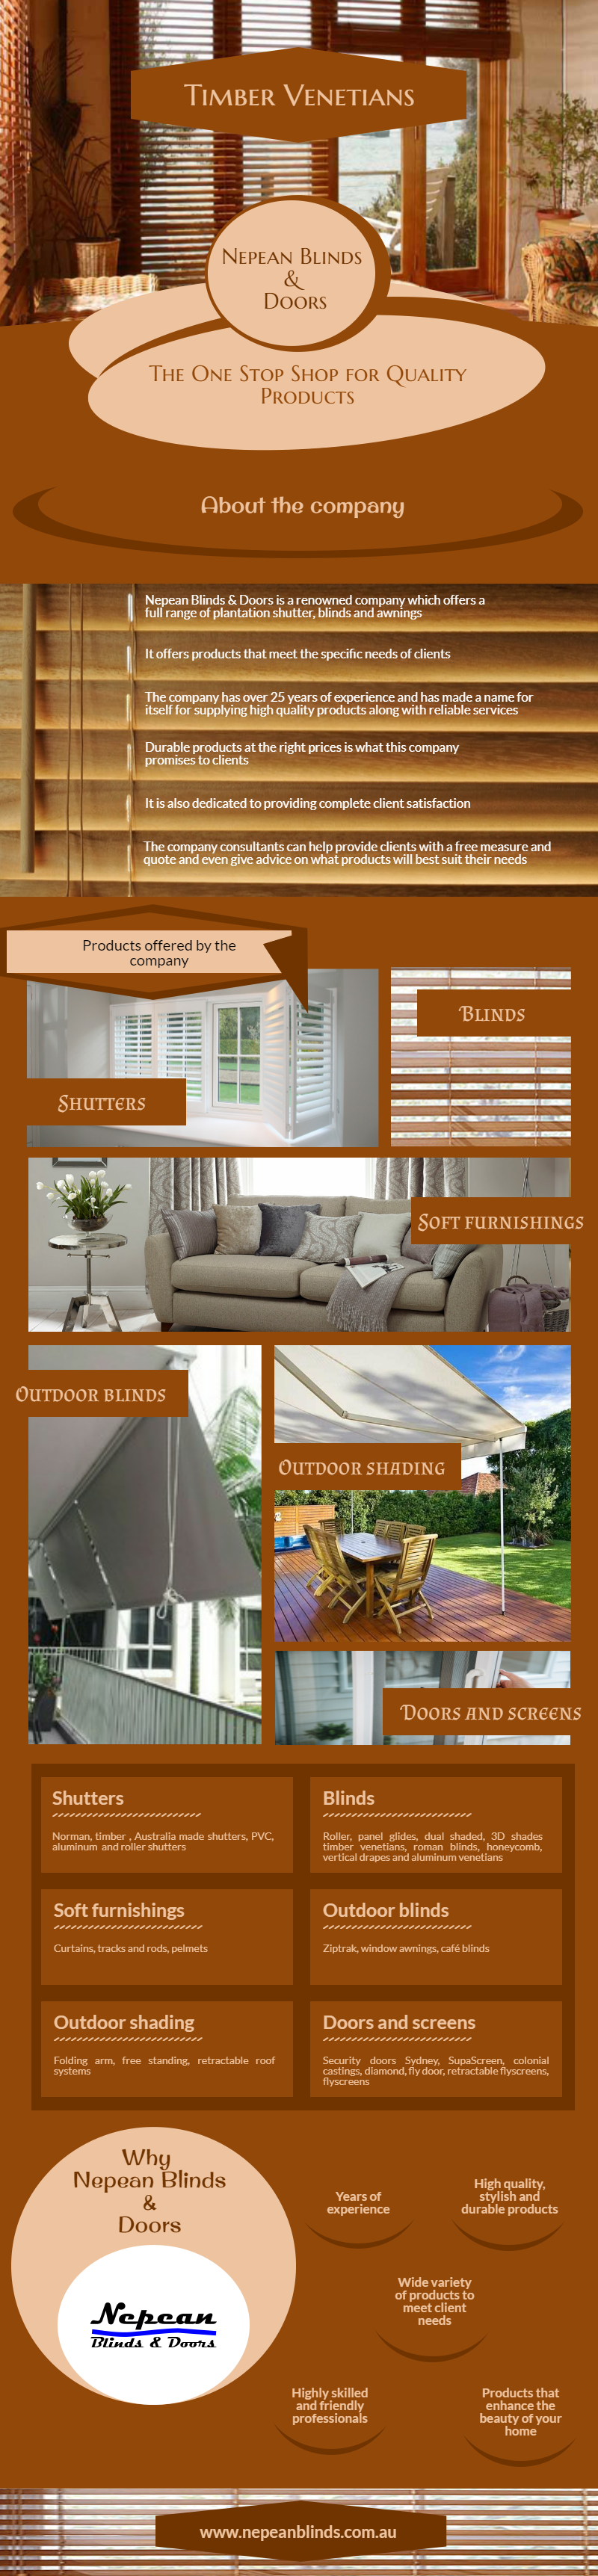 Products rollers in vogue blinds - Products Offered By The Company Blinds Roller Panel Glides Dual Shaded 3d